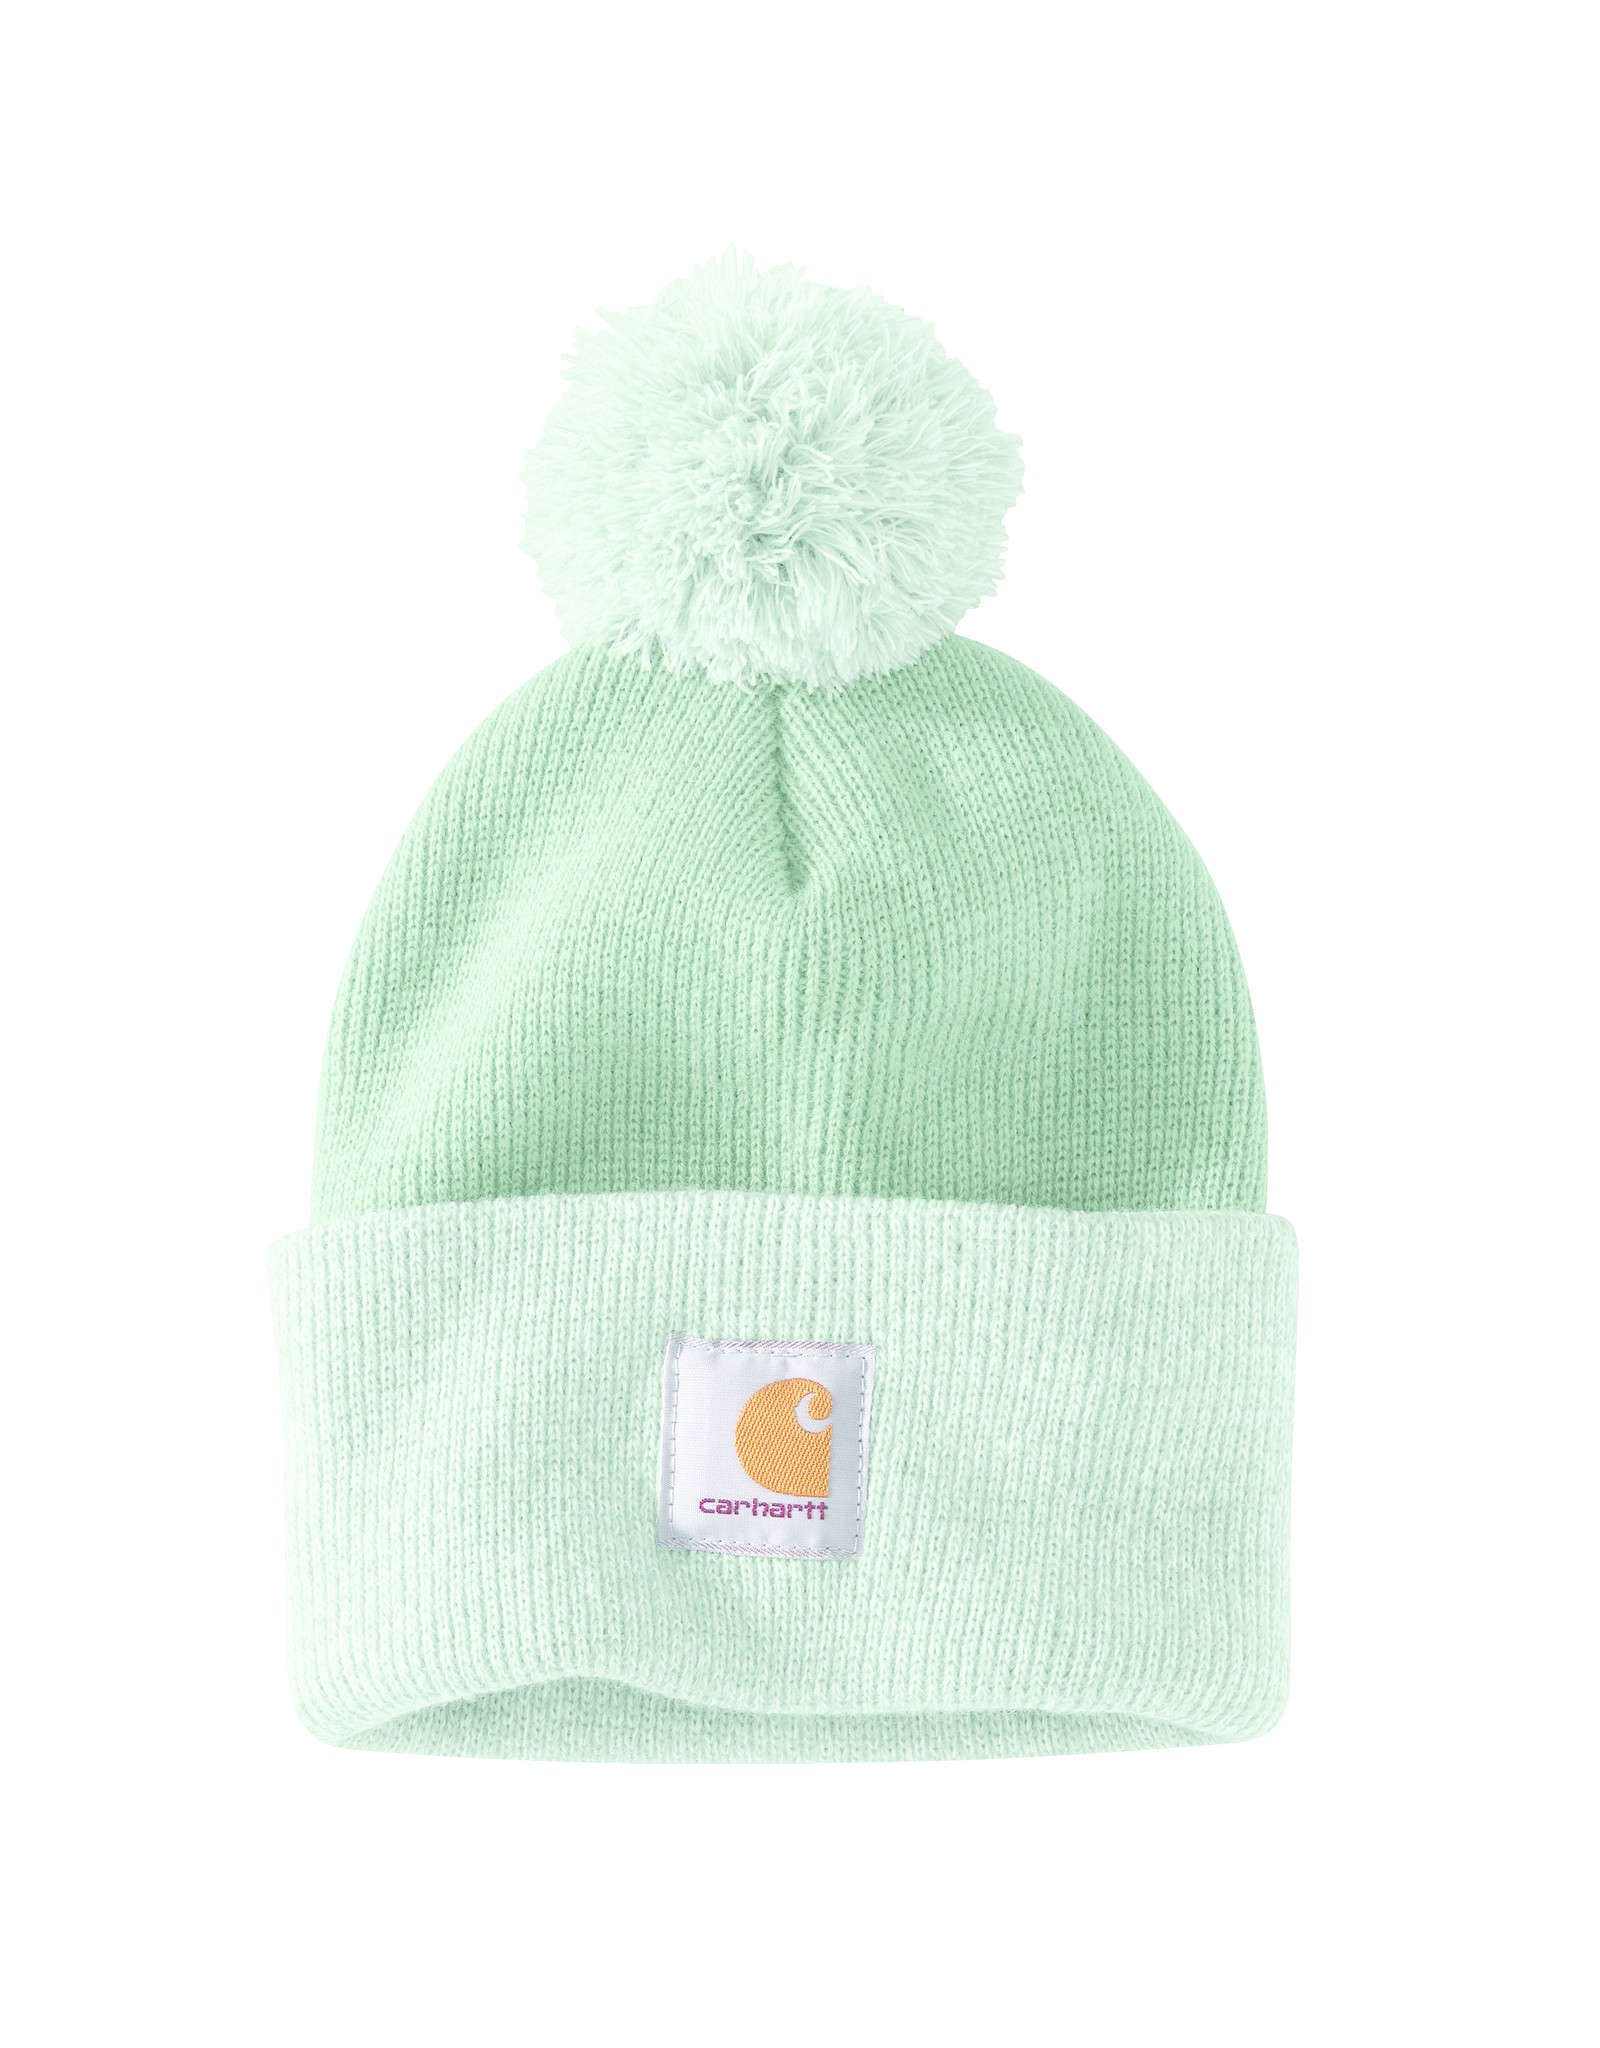 Carhartt Carhartt 102240 Acrylic Lookout Hat with Pompom